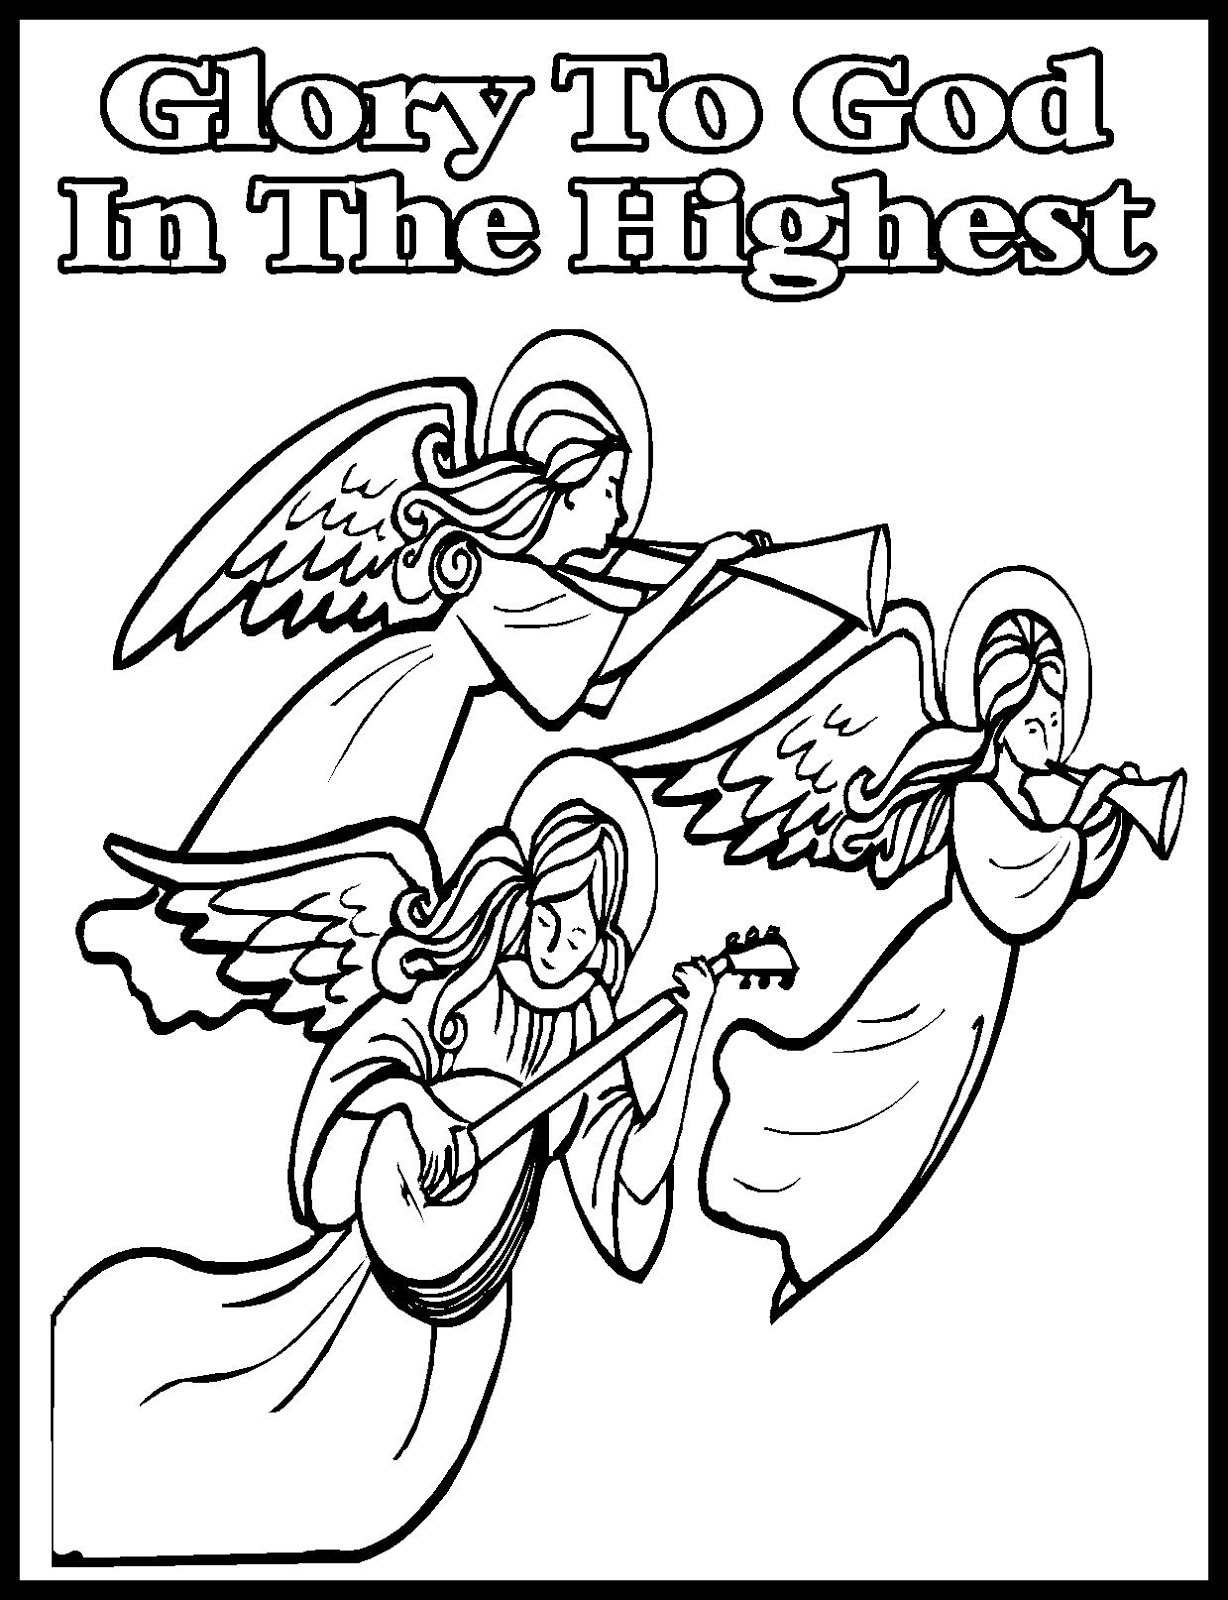 christmas coloring pages religious children39s gems in my treasure box christmas coloring sheets coloring christmas pages religious